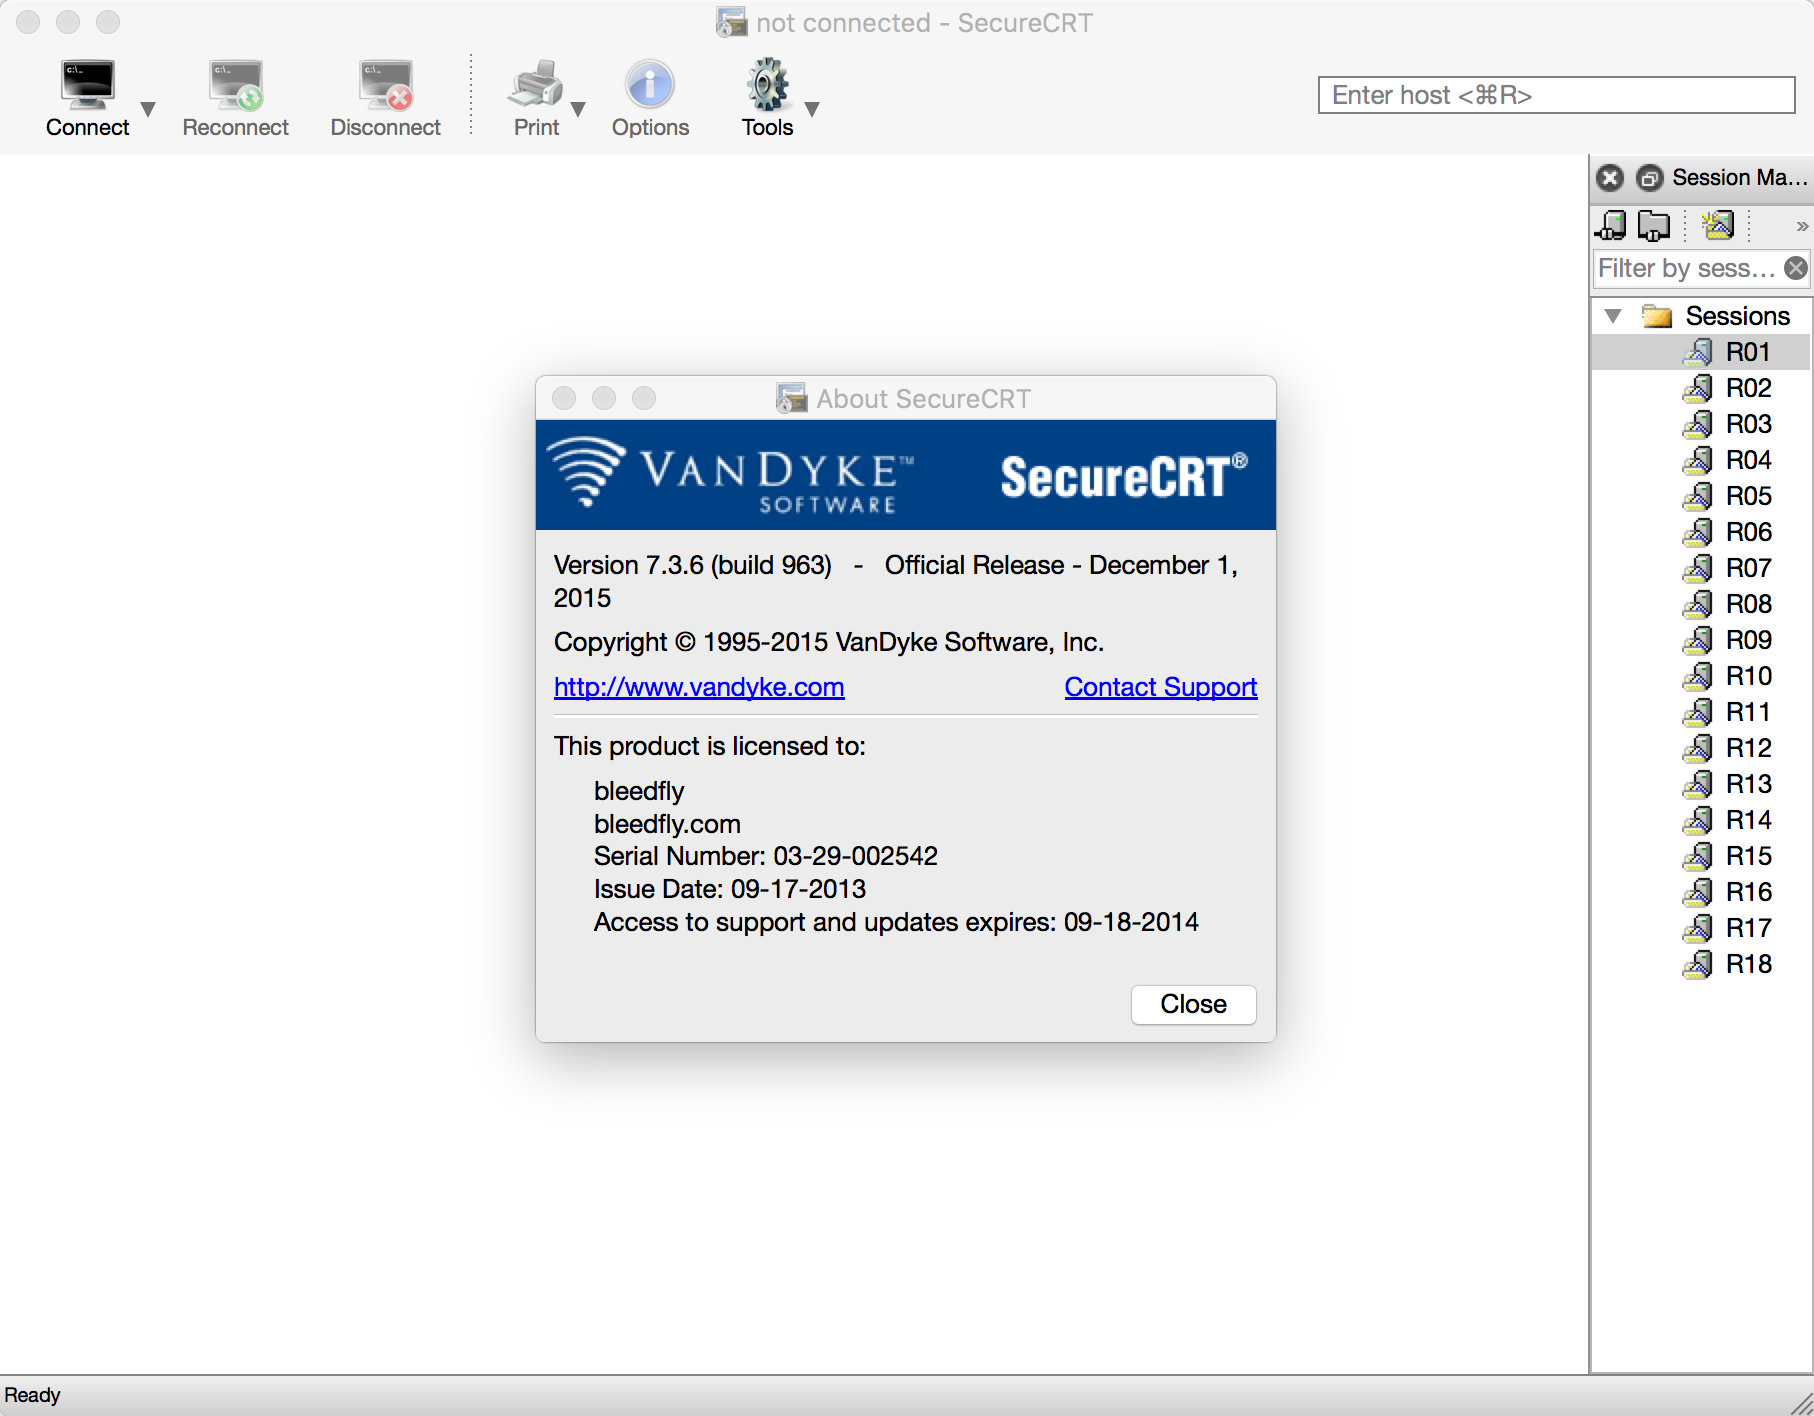 SecureCRT/FX 7.3.6(build 963) for Mac